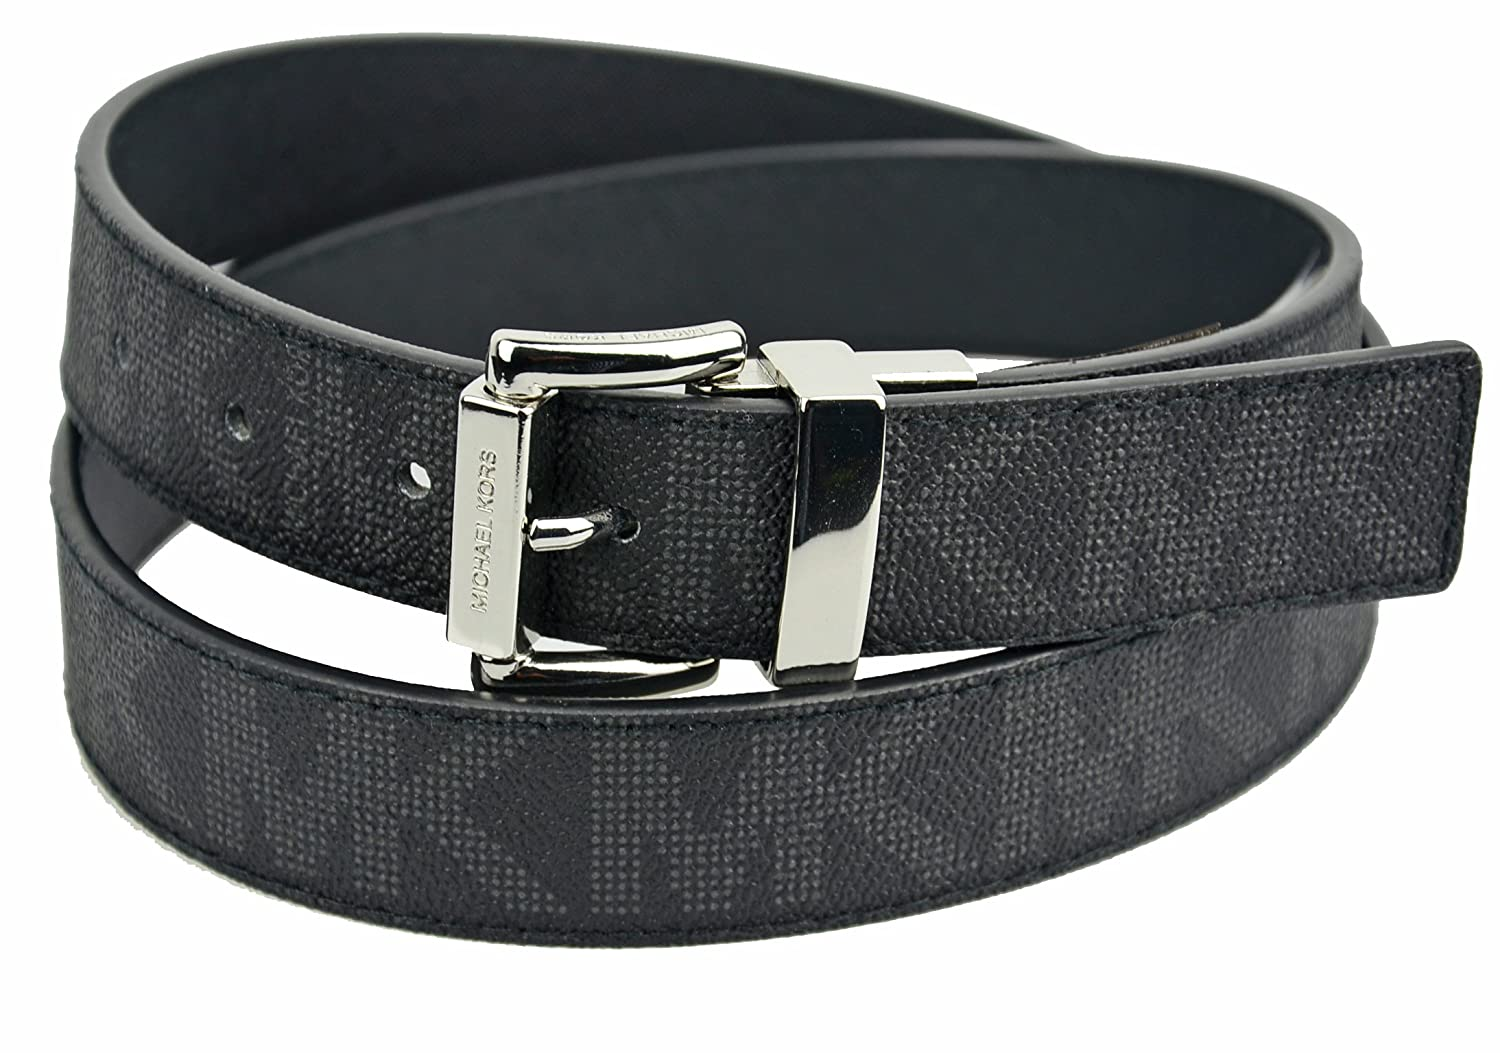 e1aa11bc3 Amazon.com: Michael Kors Womens Reversible MK Logo Silver Buckle Black Belt  Large: Clothing